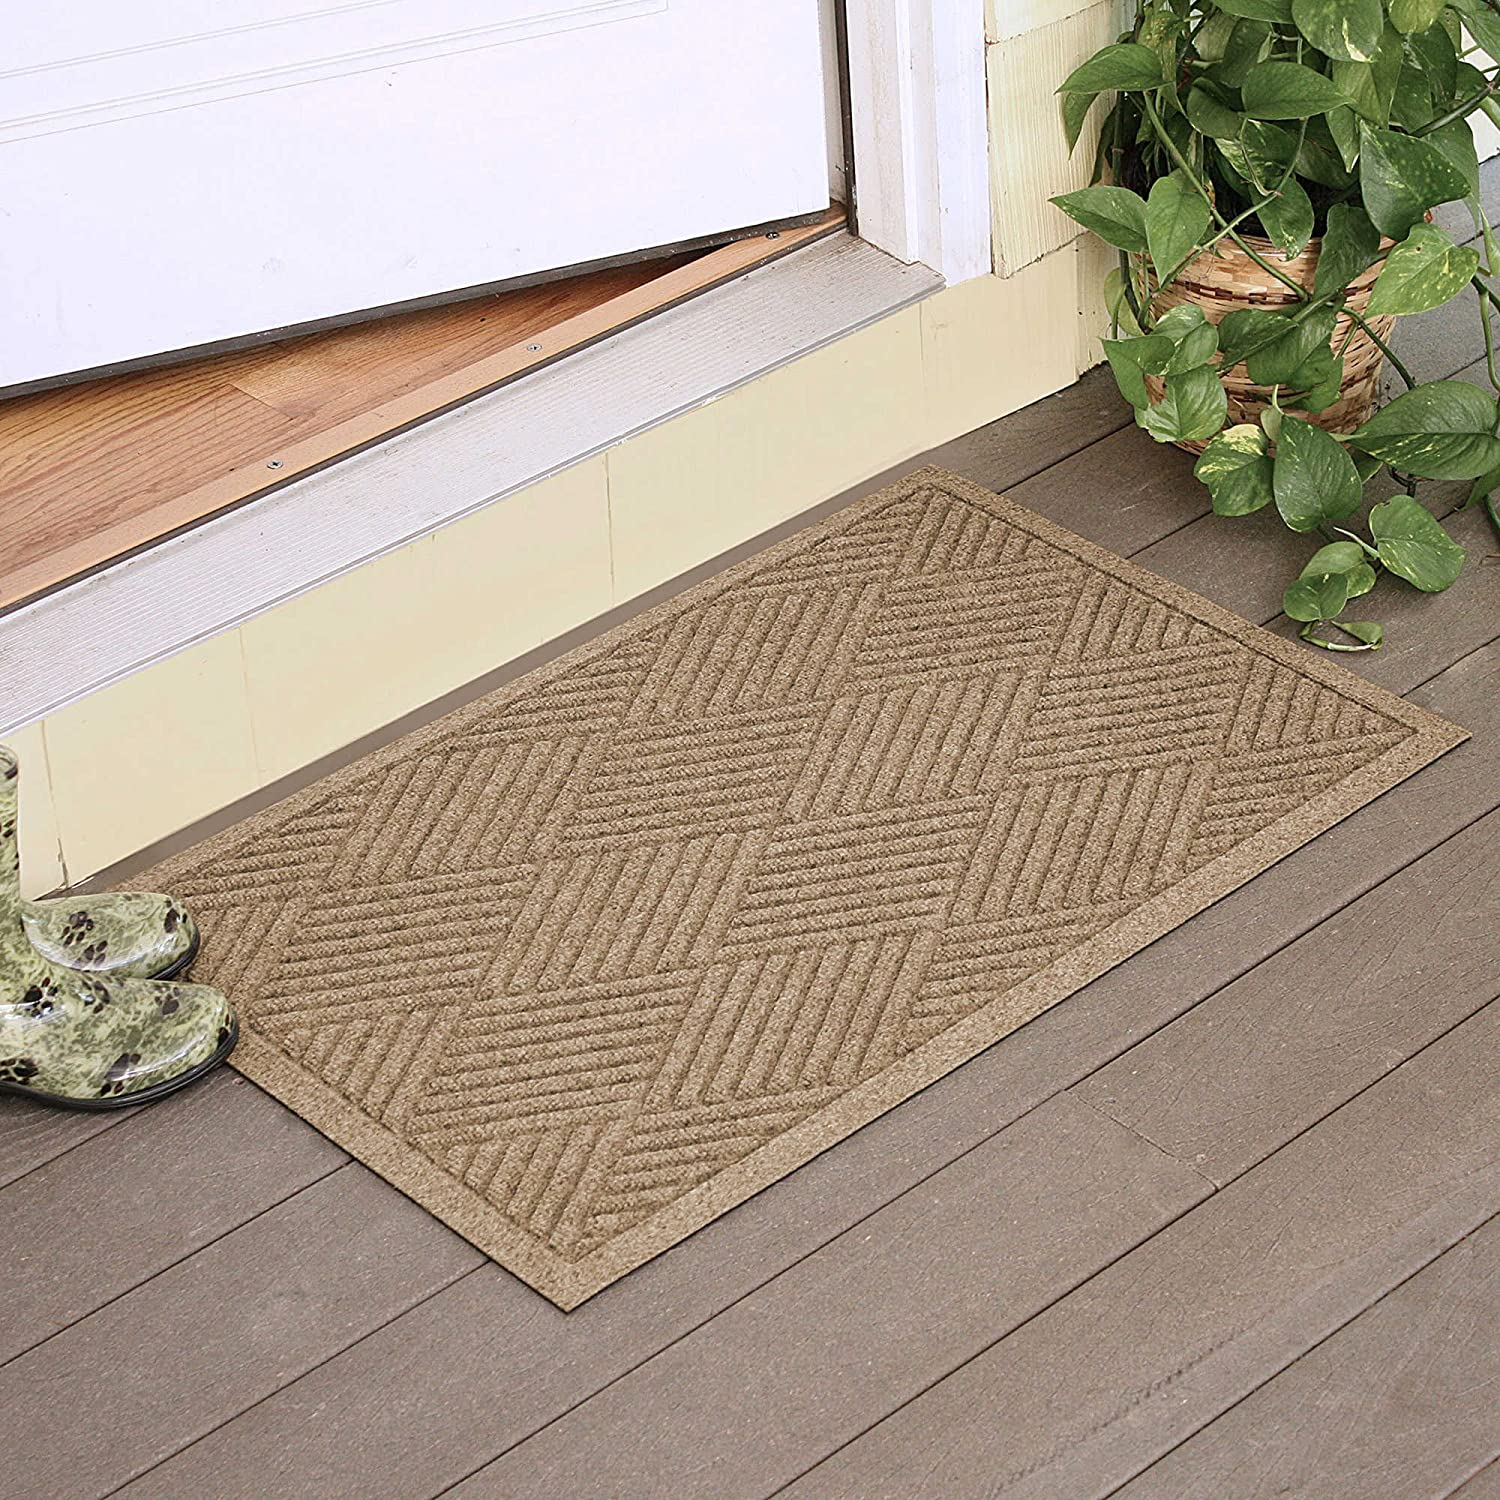 Amazon.com : Large Entryway Rug with Non Slip Rubber Backing ...